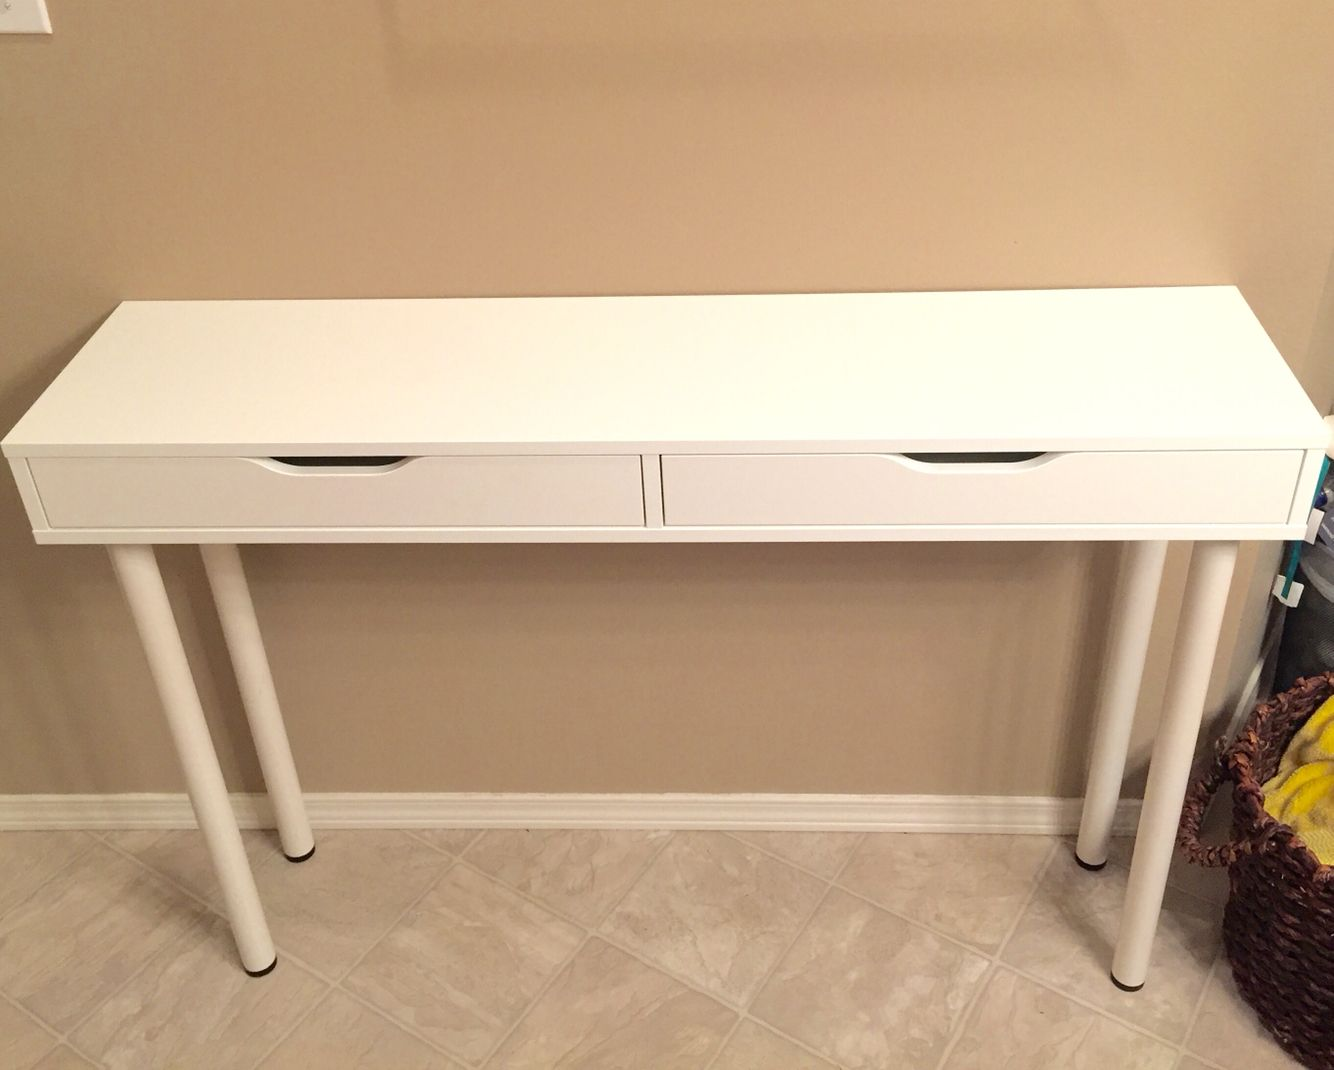 Pin By Lisa S On Vanity Inspo Ikea Furniture Hacks Furniture Hacks Ikea Dresser Hack